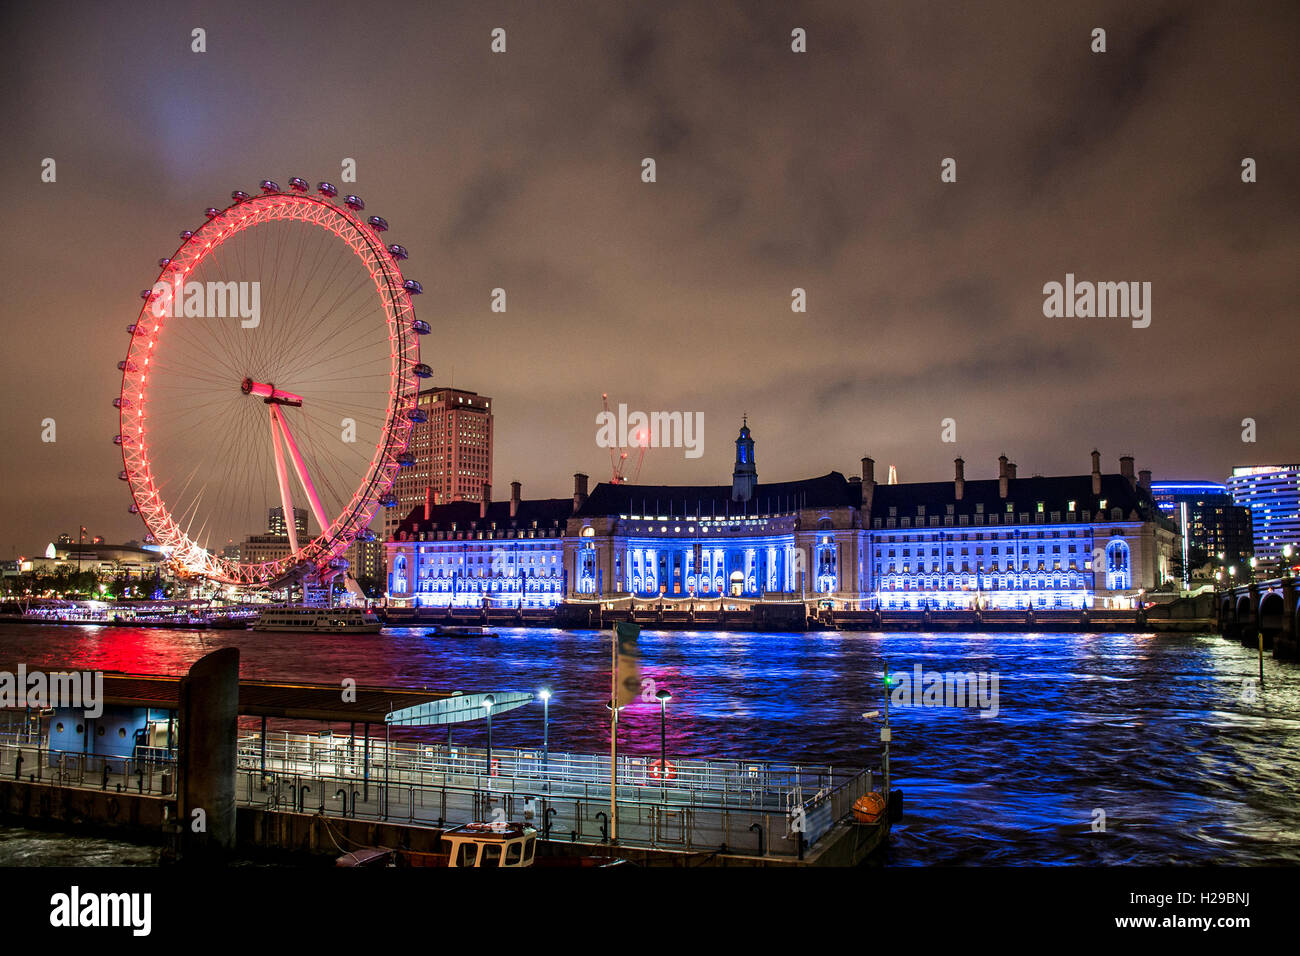 The London Eye ferris wheel illuminated city night shot - Stock Image